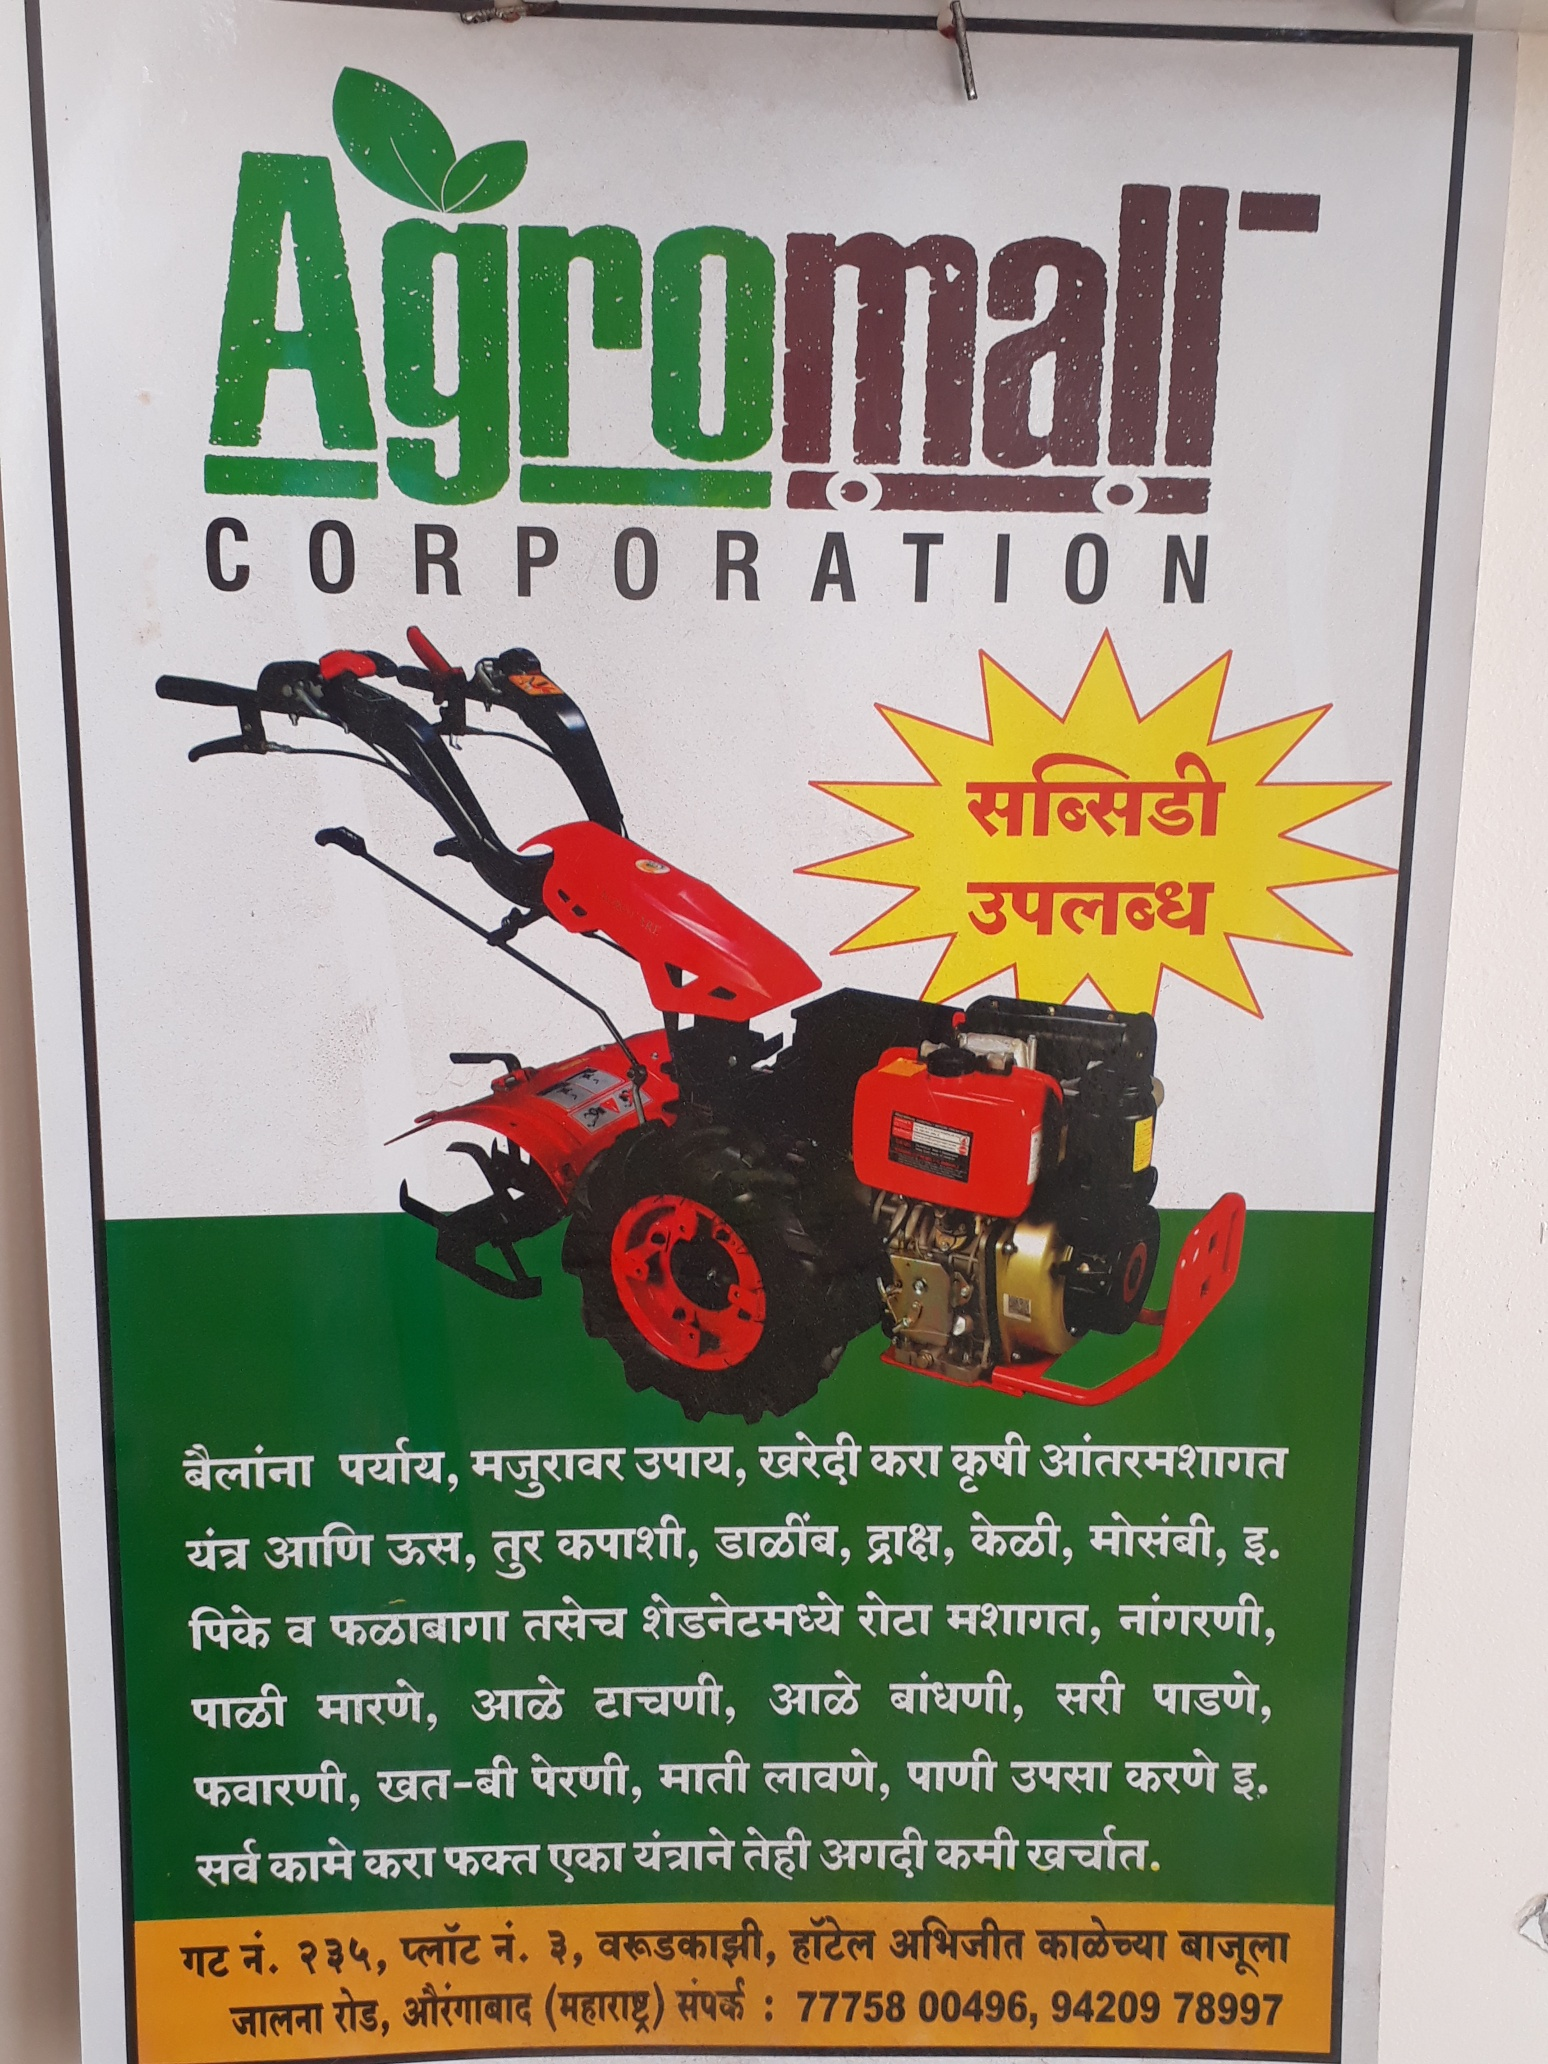 Agromall Corporation_image0